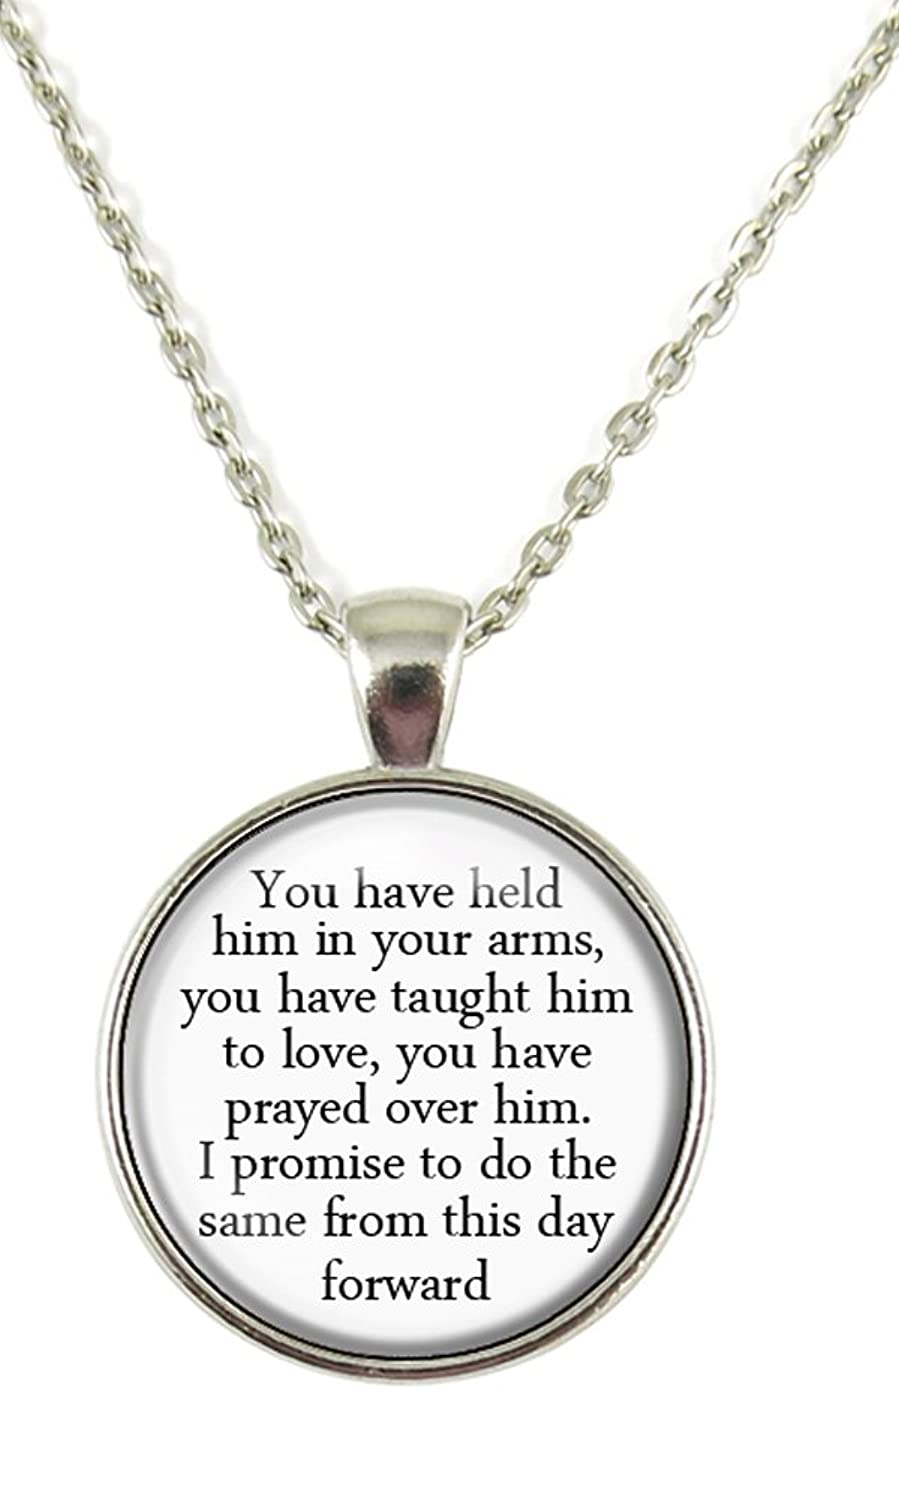 Amazon mother gift mother of the groom necklace gift for amazon mother gift mother of the groom necklace gift for future mother in law wedding chain pendant necklace jewelry aloadofball Choice Image